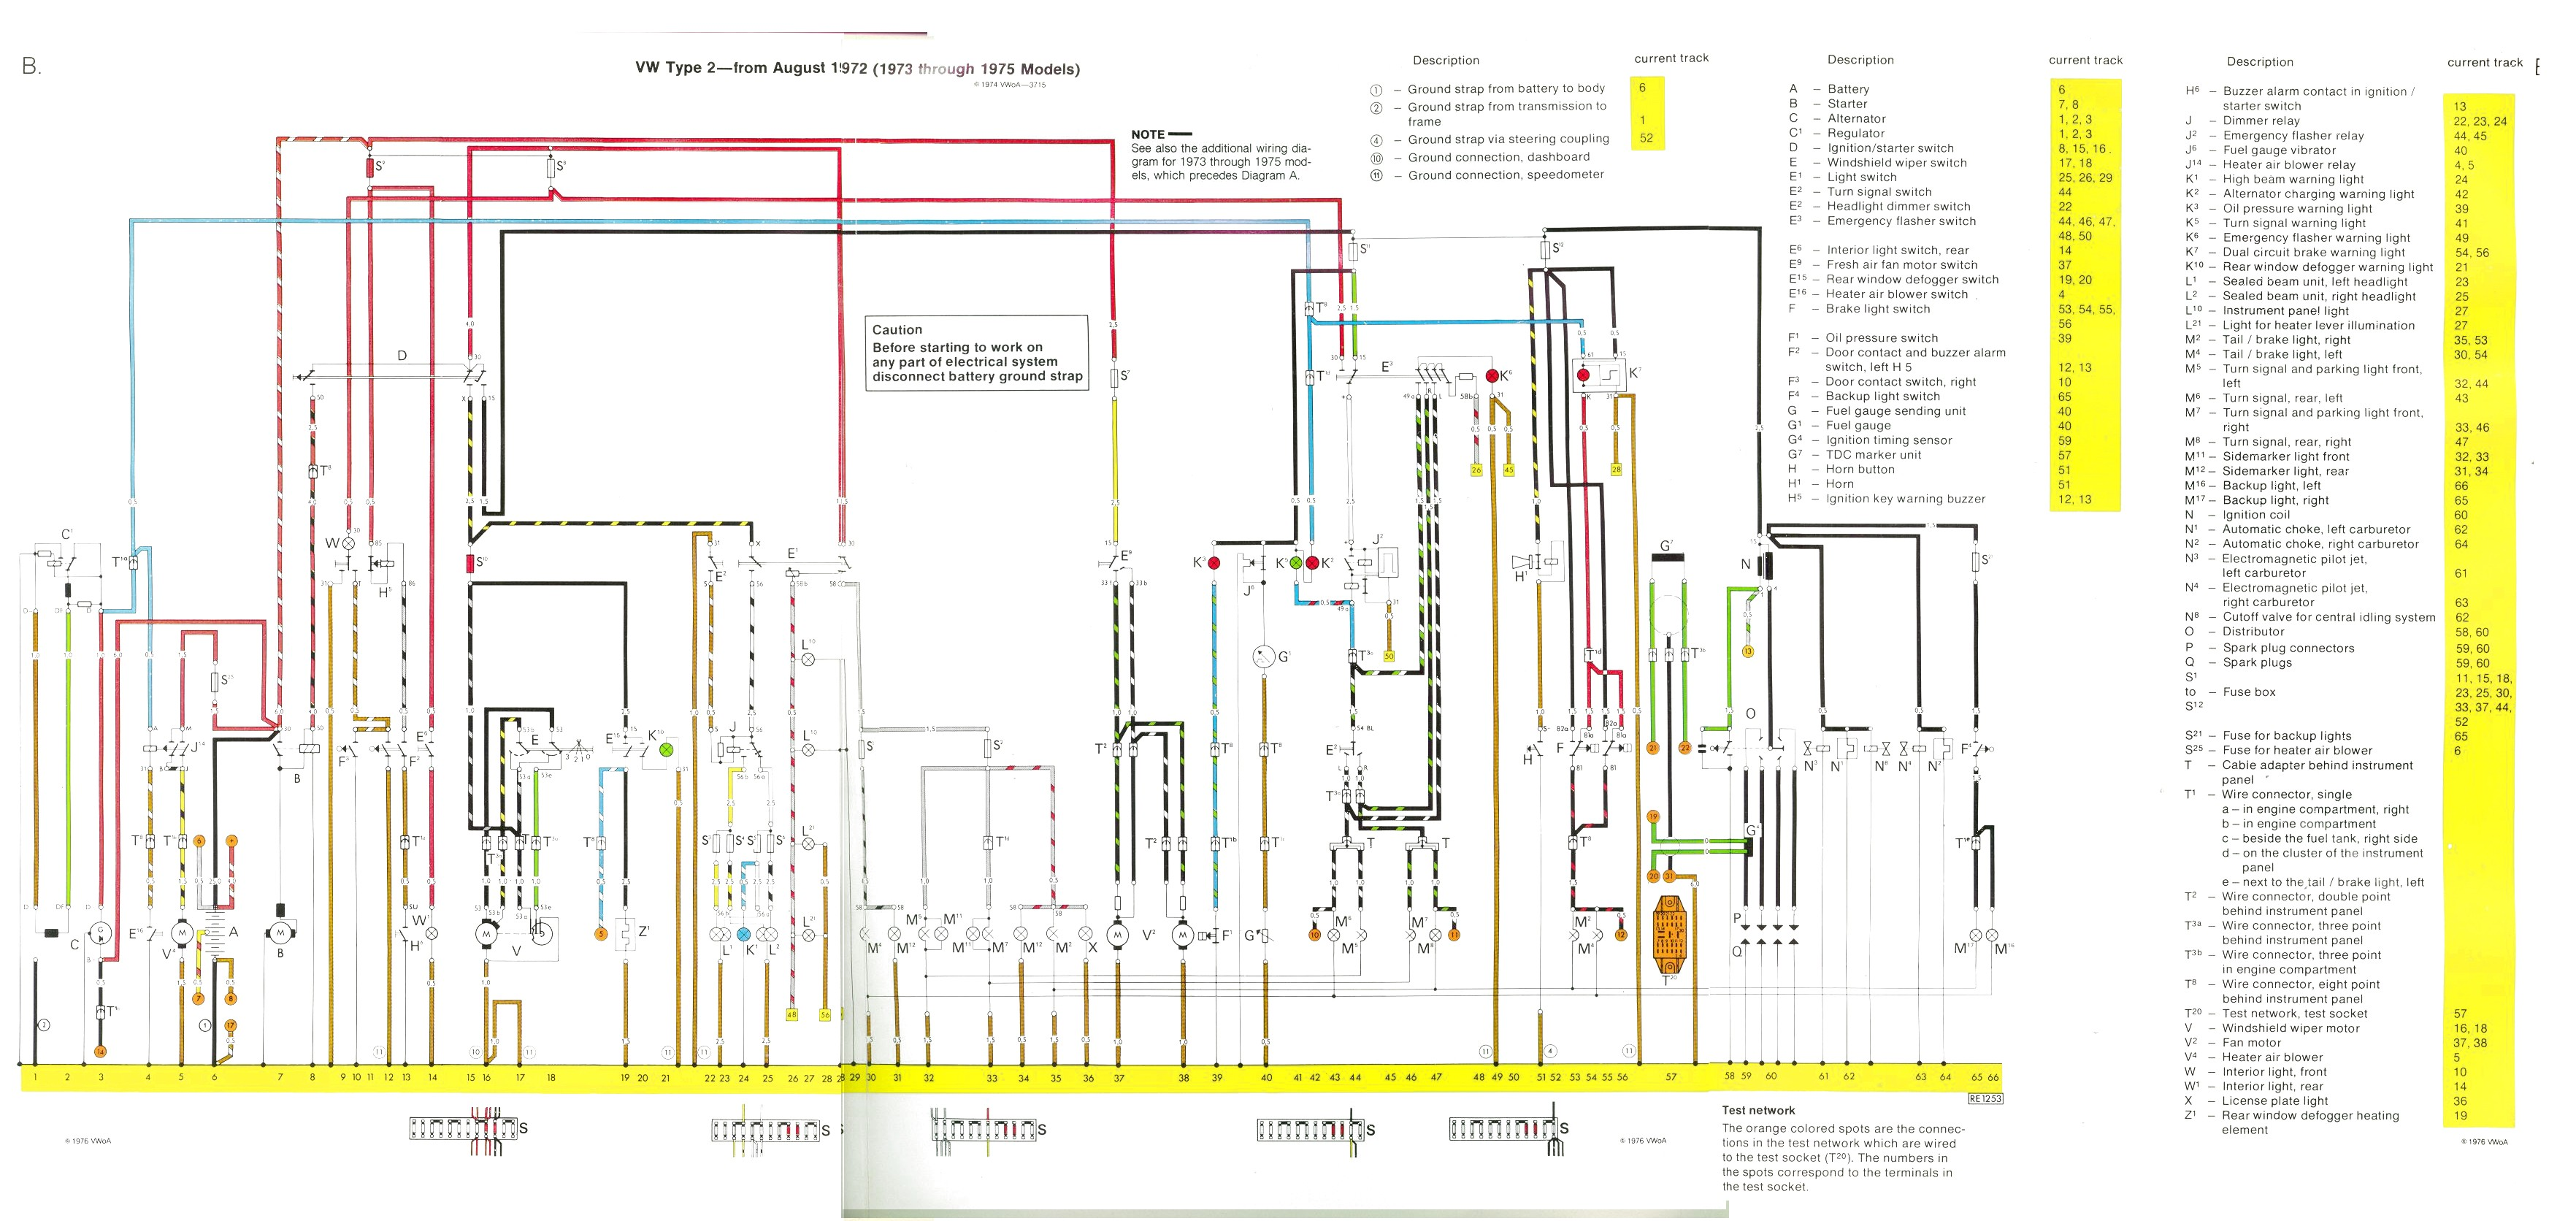 bus 73 75 vw wiring diagrams 1973 vw beetle wiring diagram at virtualis.co